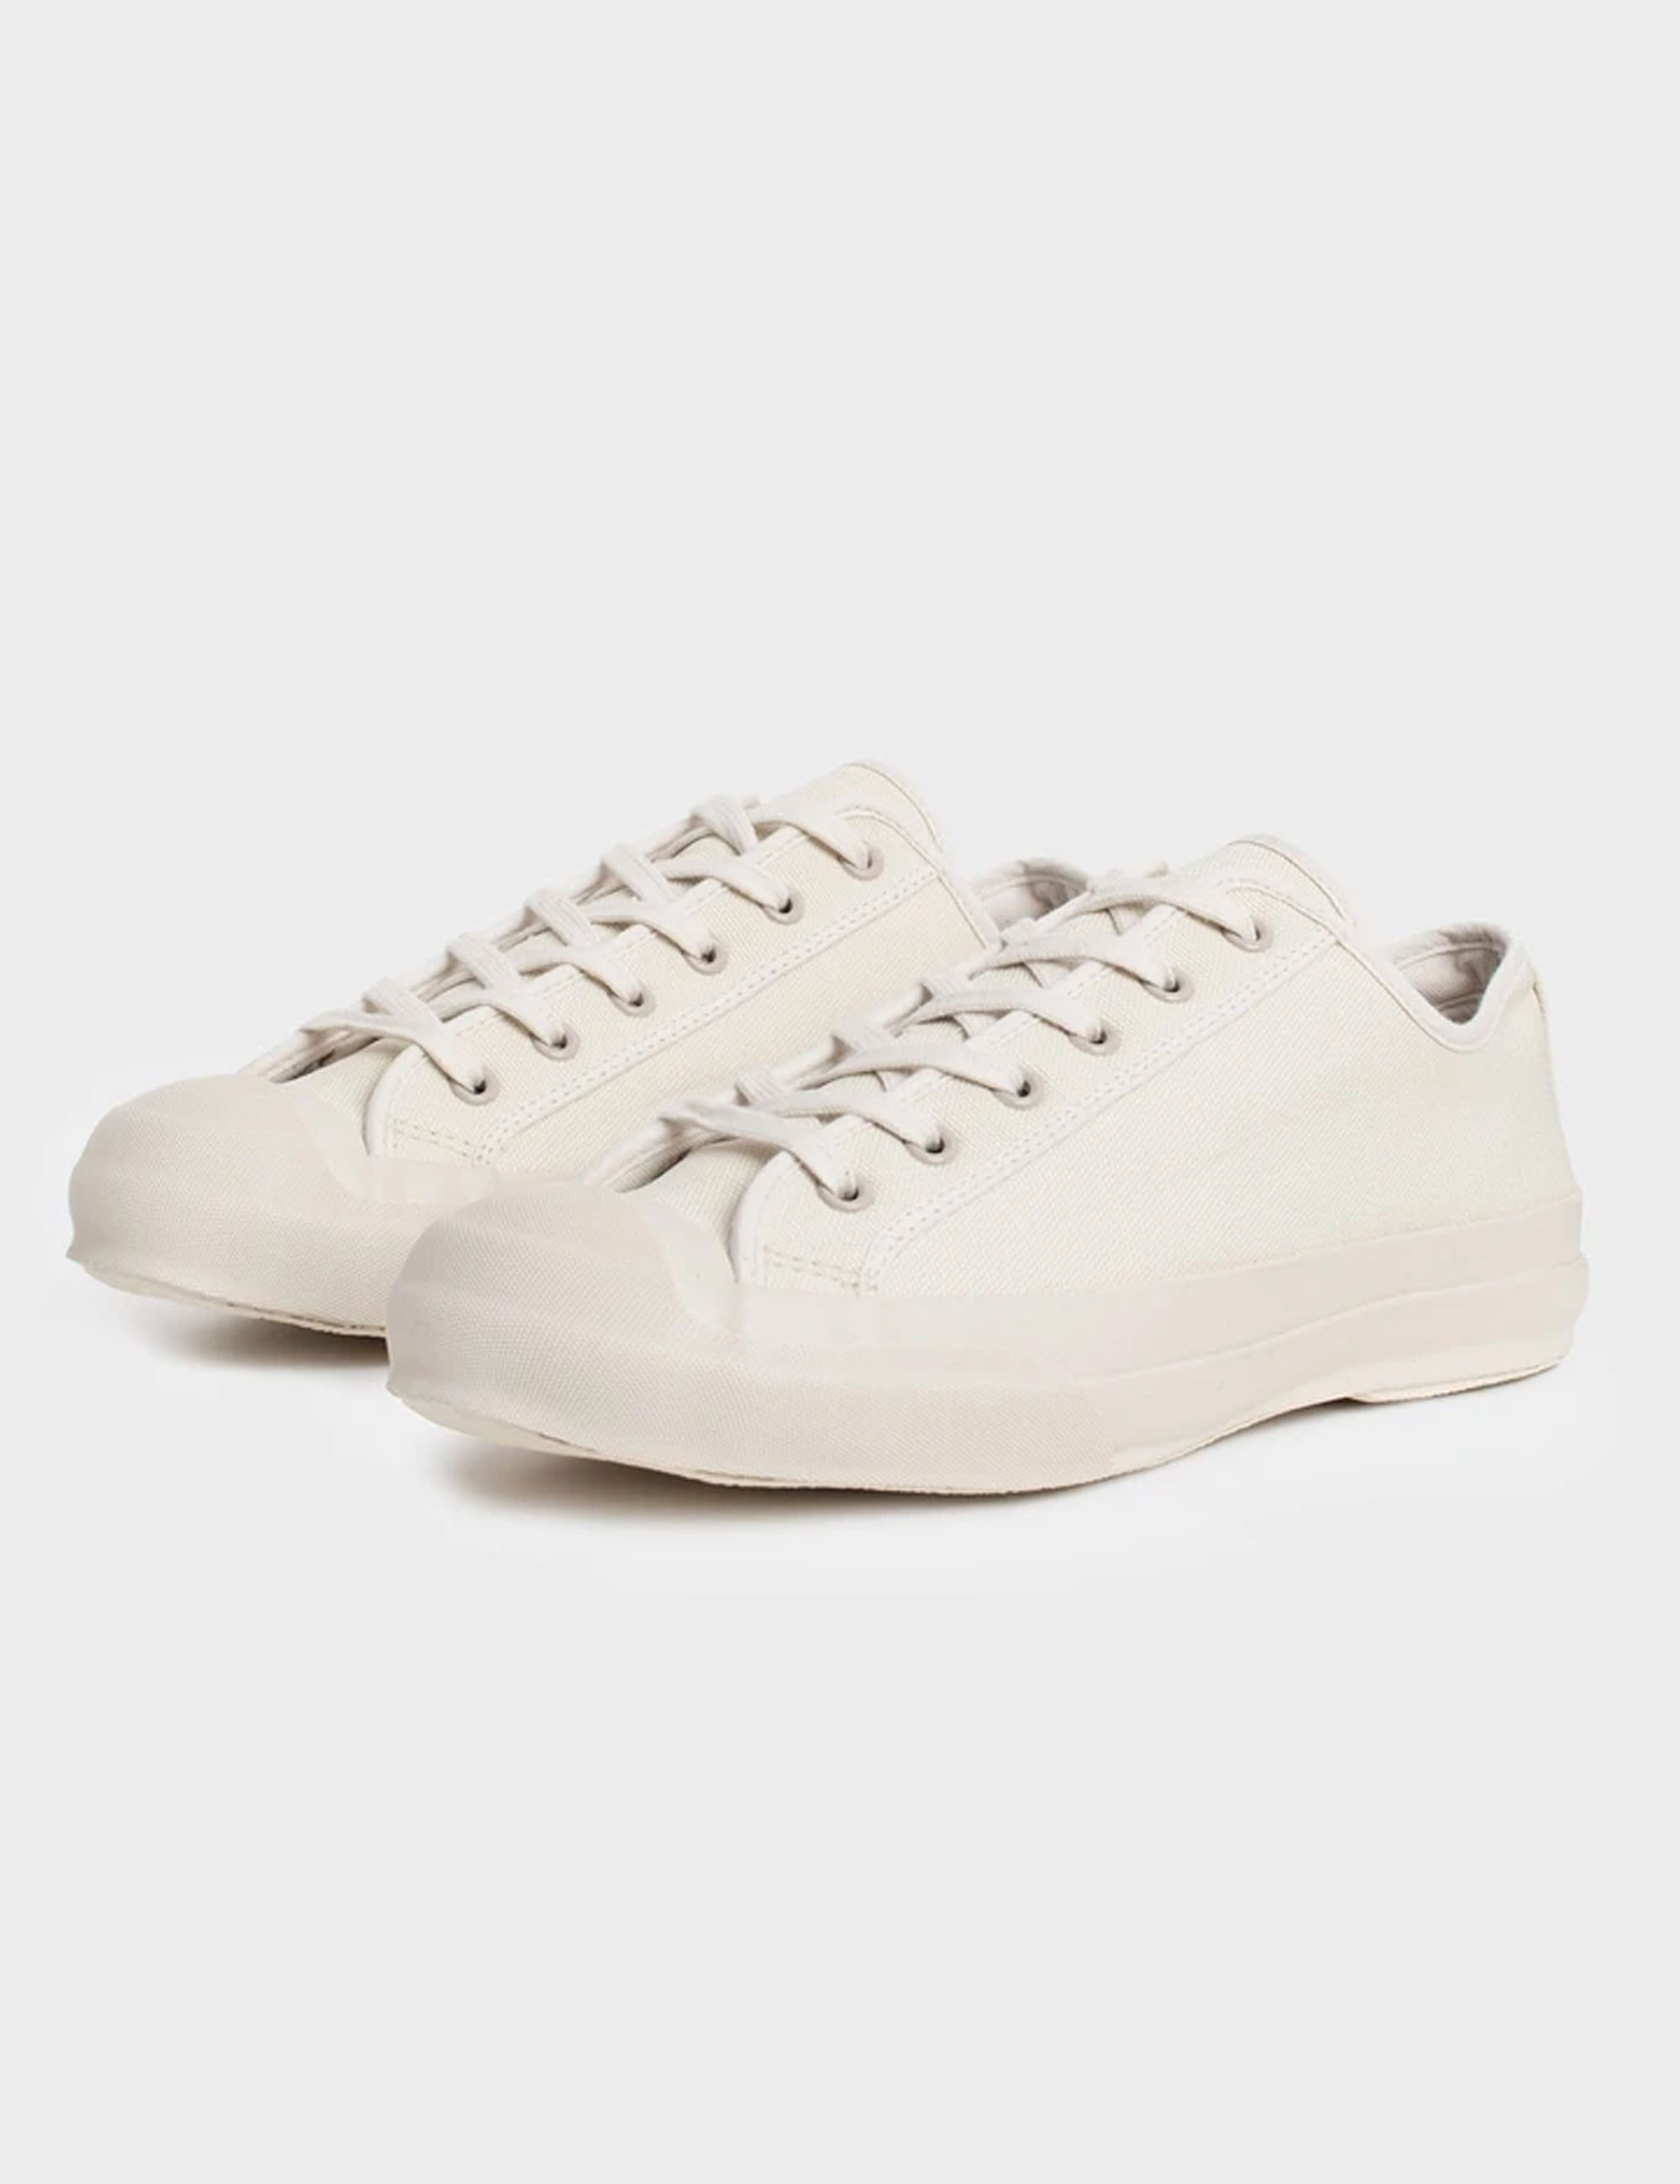 MERINO VULCANISED SOLE CANVAS SHOE IN CREAM